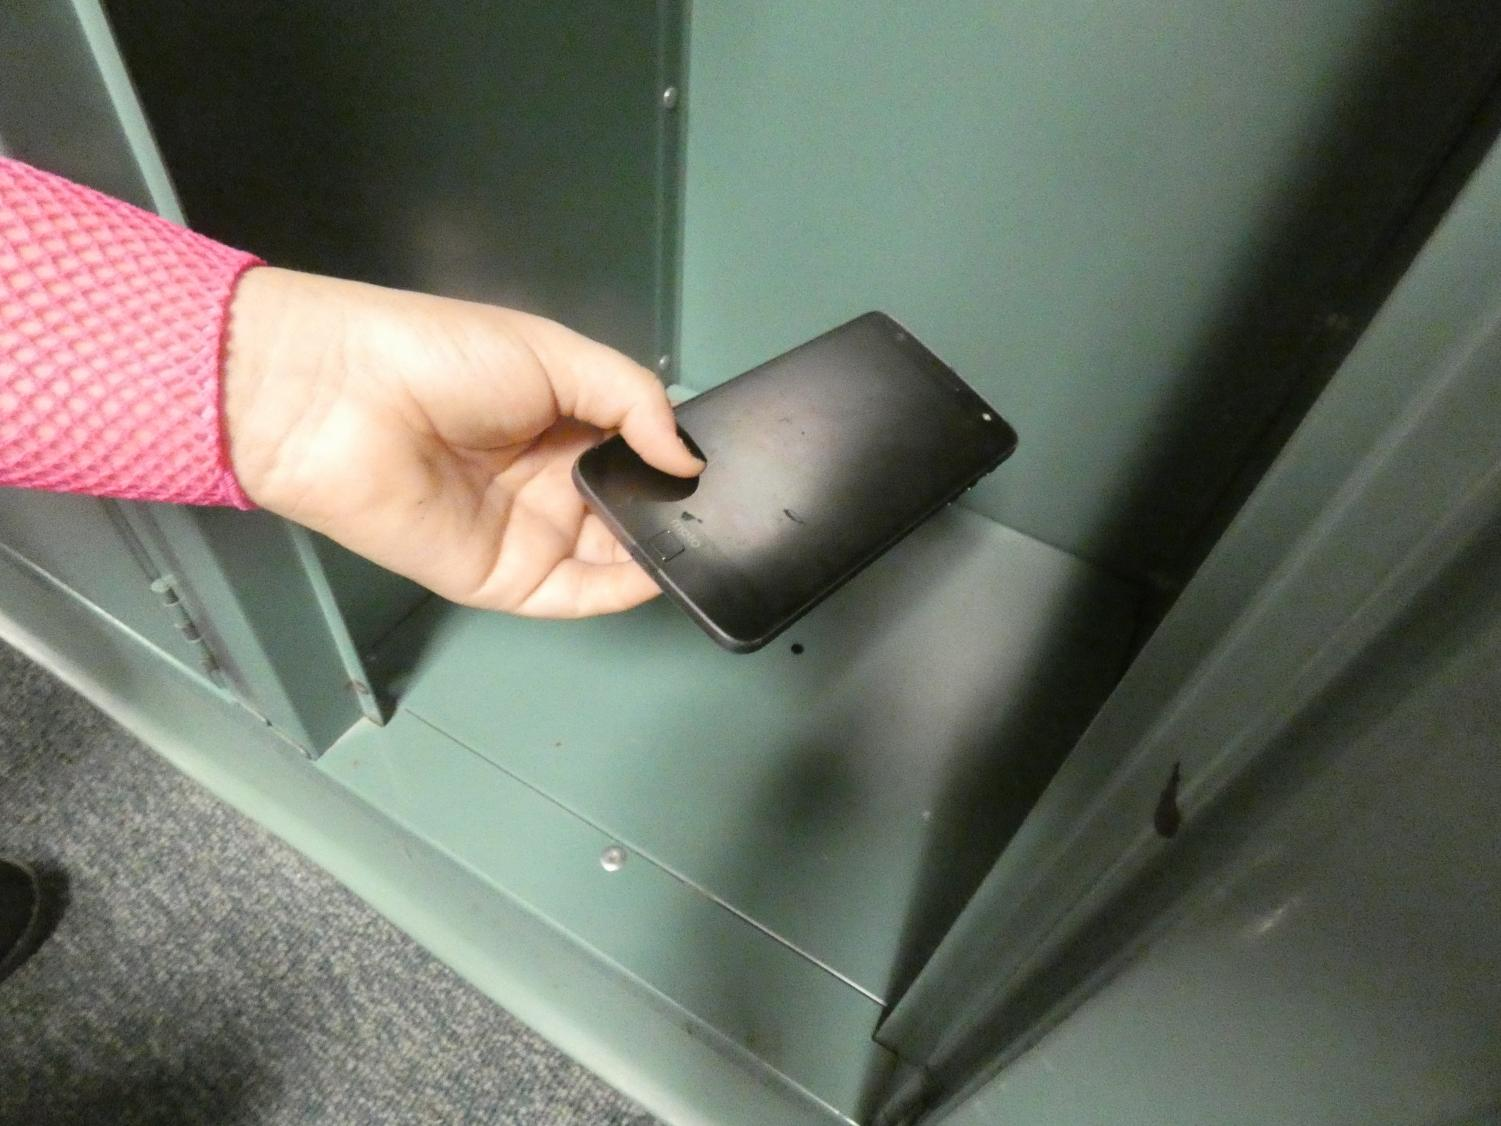 SOLITARY CONFINEMENT. In a policy change, students have to lock up their cell phones during the school day. Last school year, students were allowed to carry their phones during the day and use them during lunch.